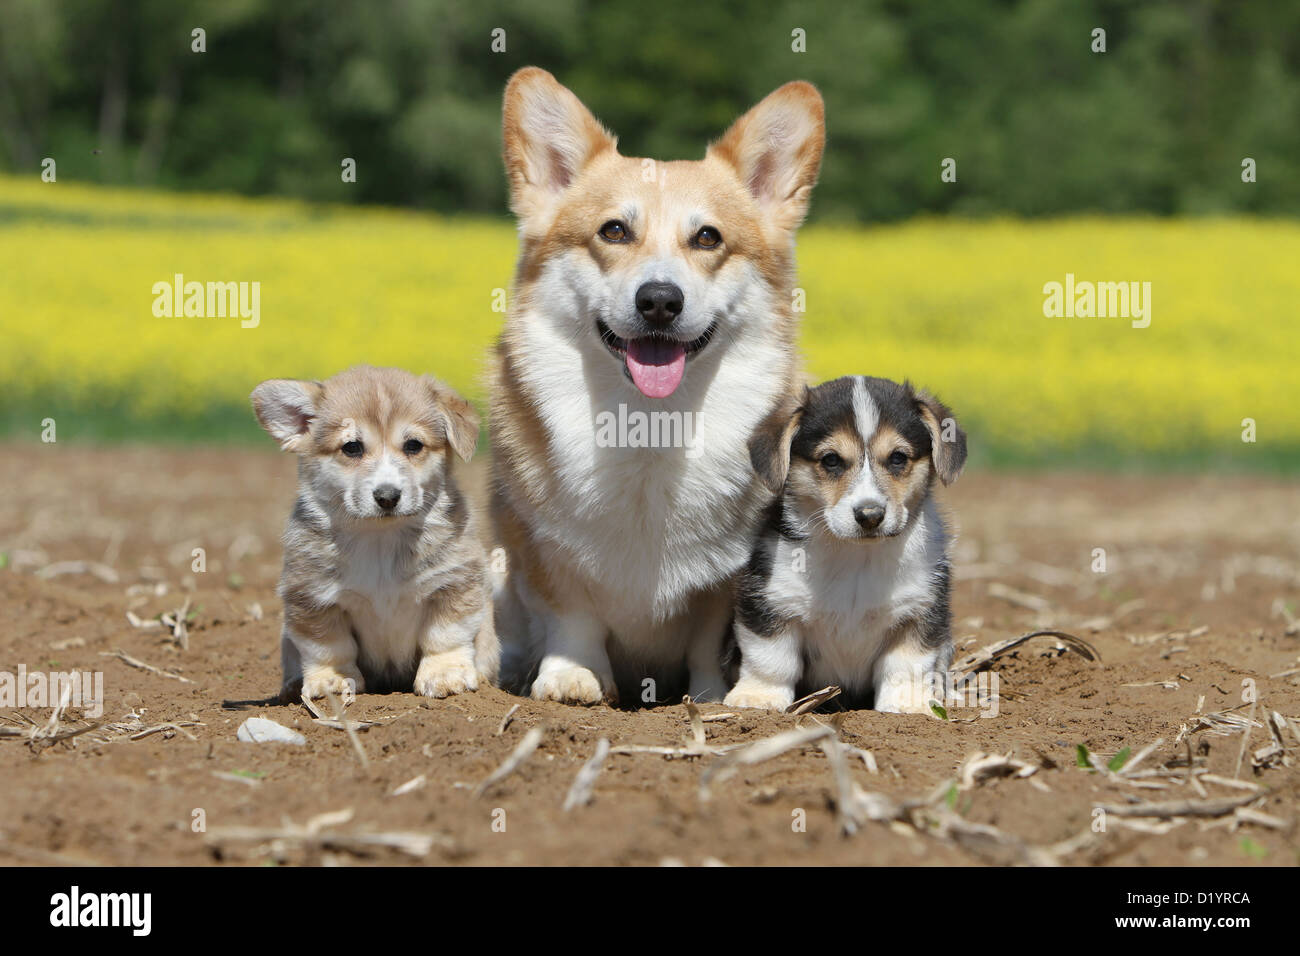 Dog pembroke welsh corgi adult and two puppies different colors dog pembroke welsh corgi adult and two puppies different colors sitting altavistaventures Image collections